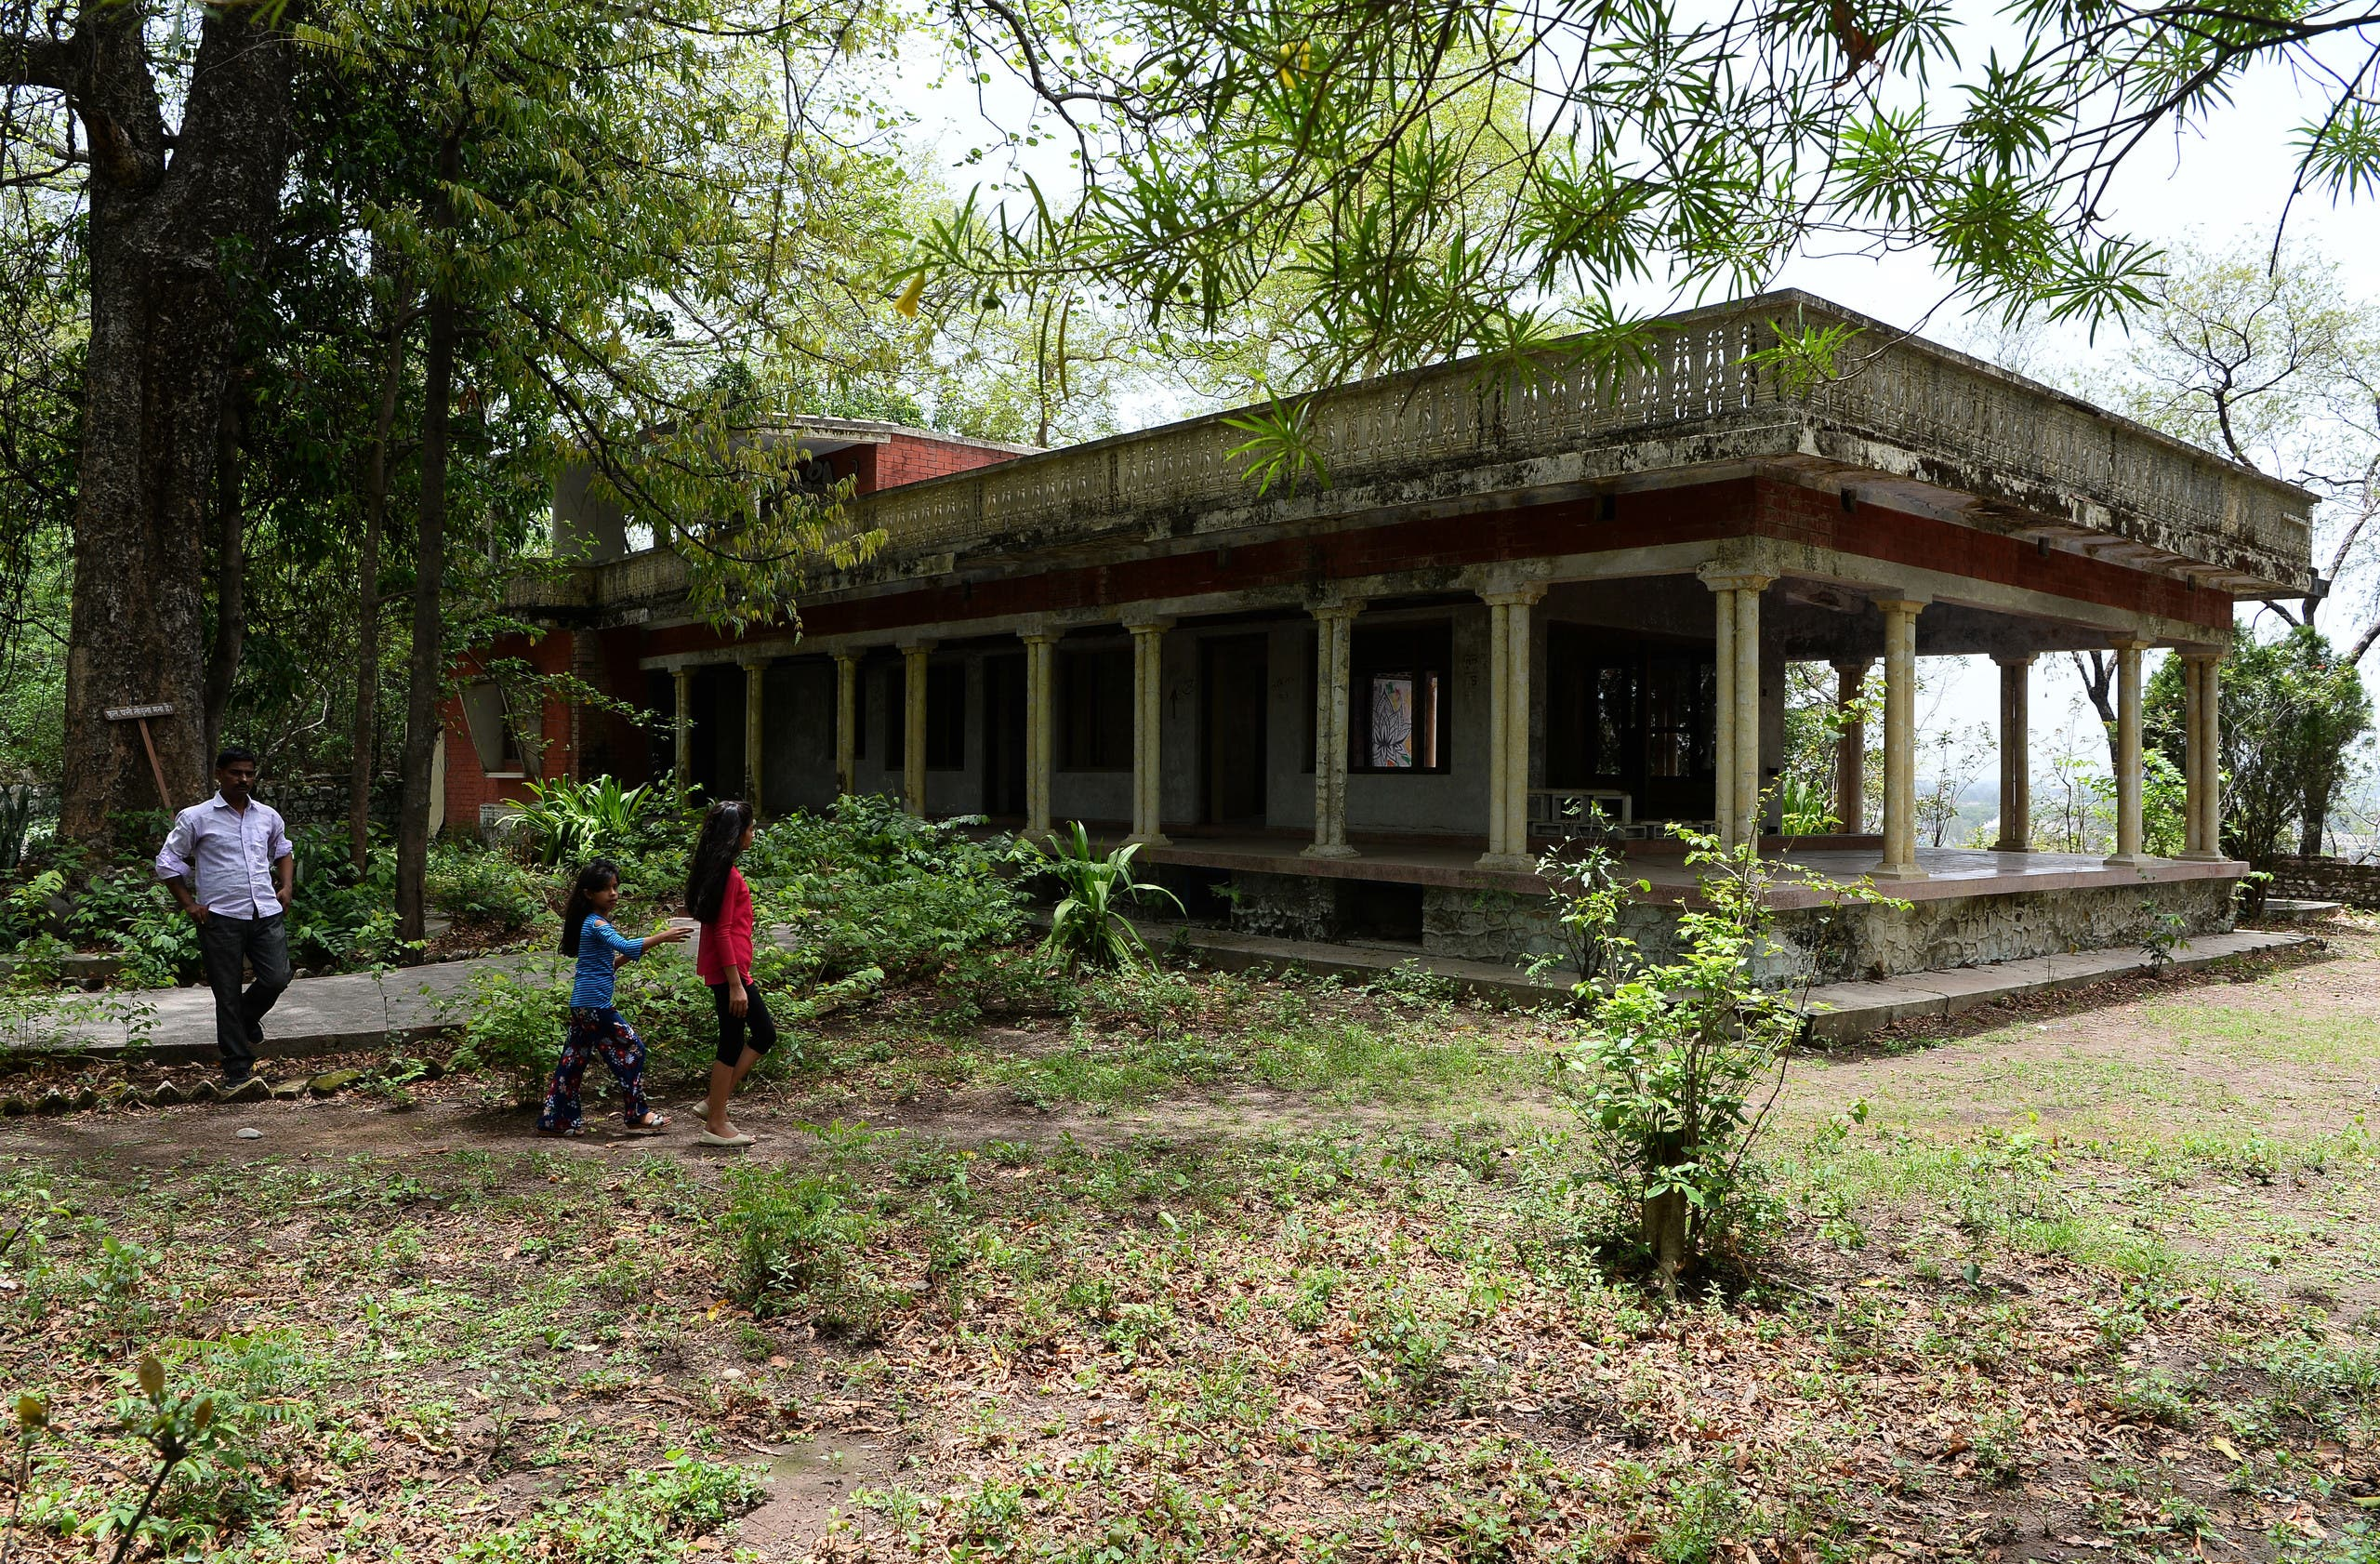 Tourists walking past the now-derelict house of the Maharishi Mahesh Yogi at the ashram visited by the Beatles 50 years ago, in Rishikesh in northern India on June 18, 2018. (AFP)